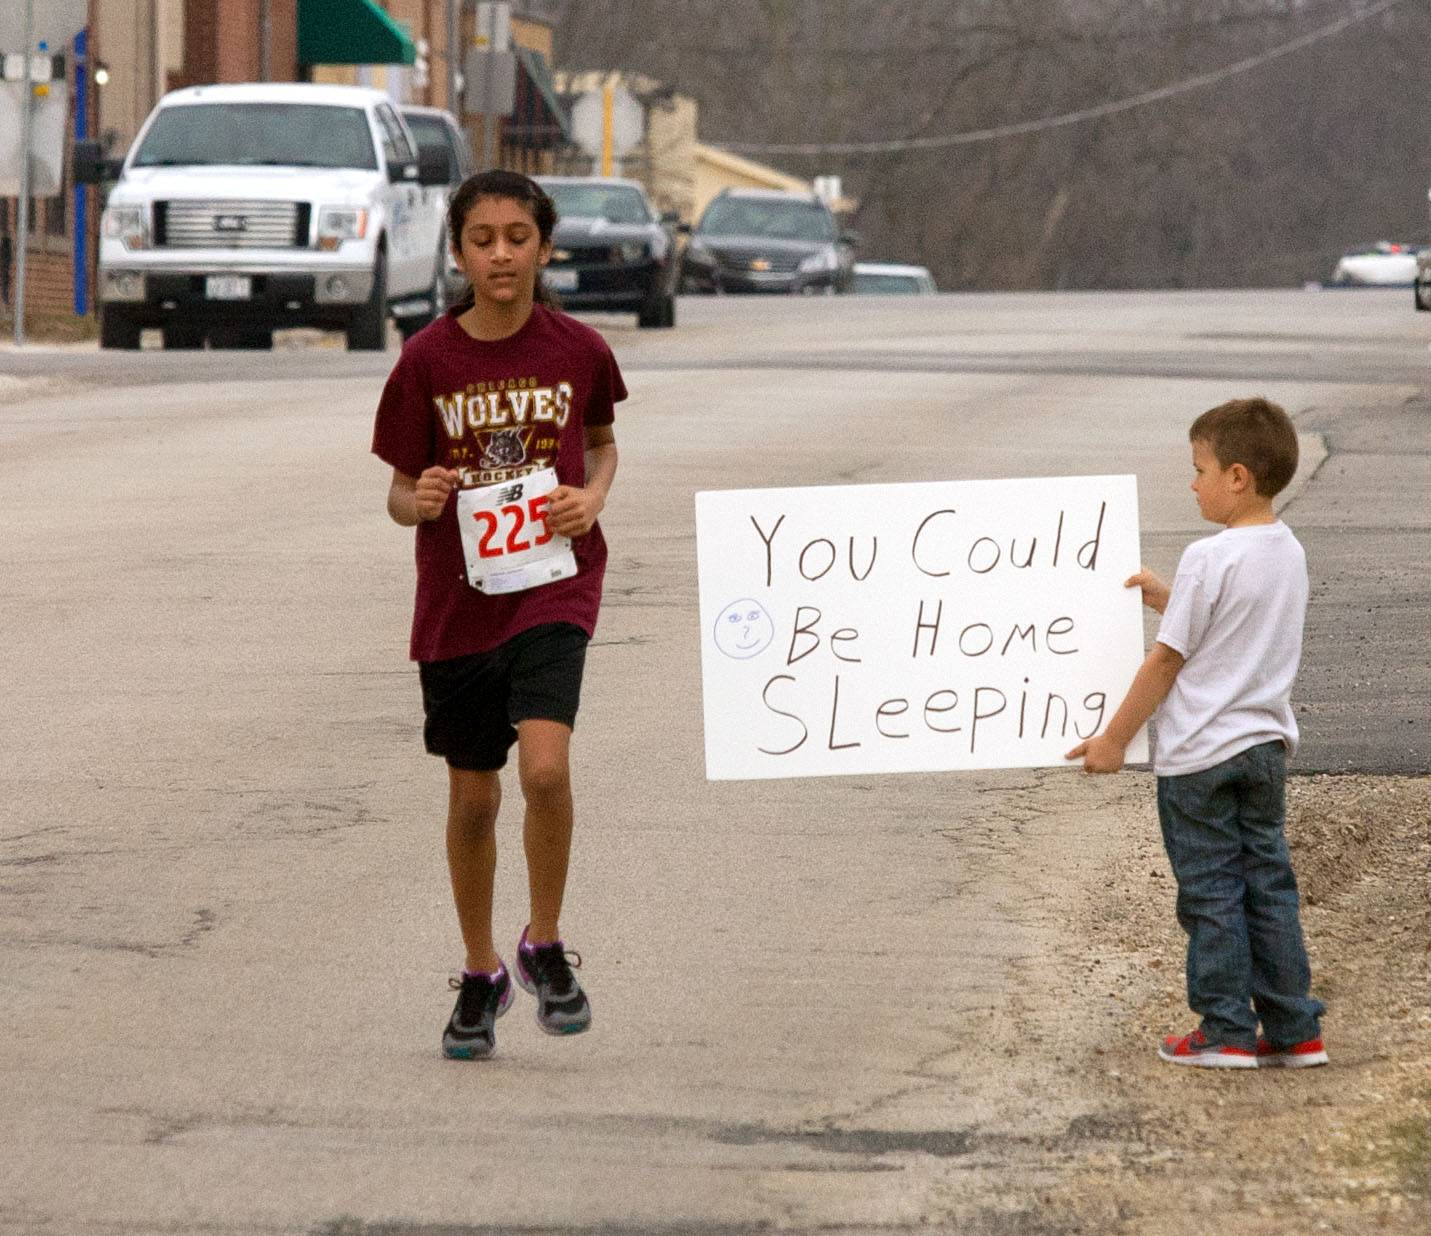 Gianni Middona, 5, of Elburn holds an encouraging sign for Cimmy Nakum, 12, of Elburn, who finishes the 10th annual Dewey Dash race, held Sunday in downtown Elburn. According to a race results website, Cimmy took first place in her age division in the 5K.